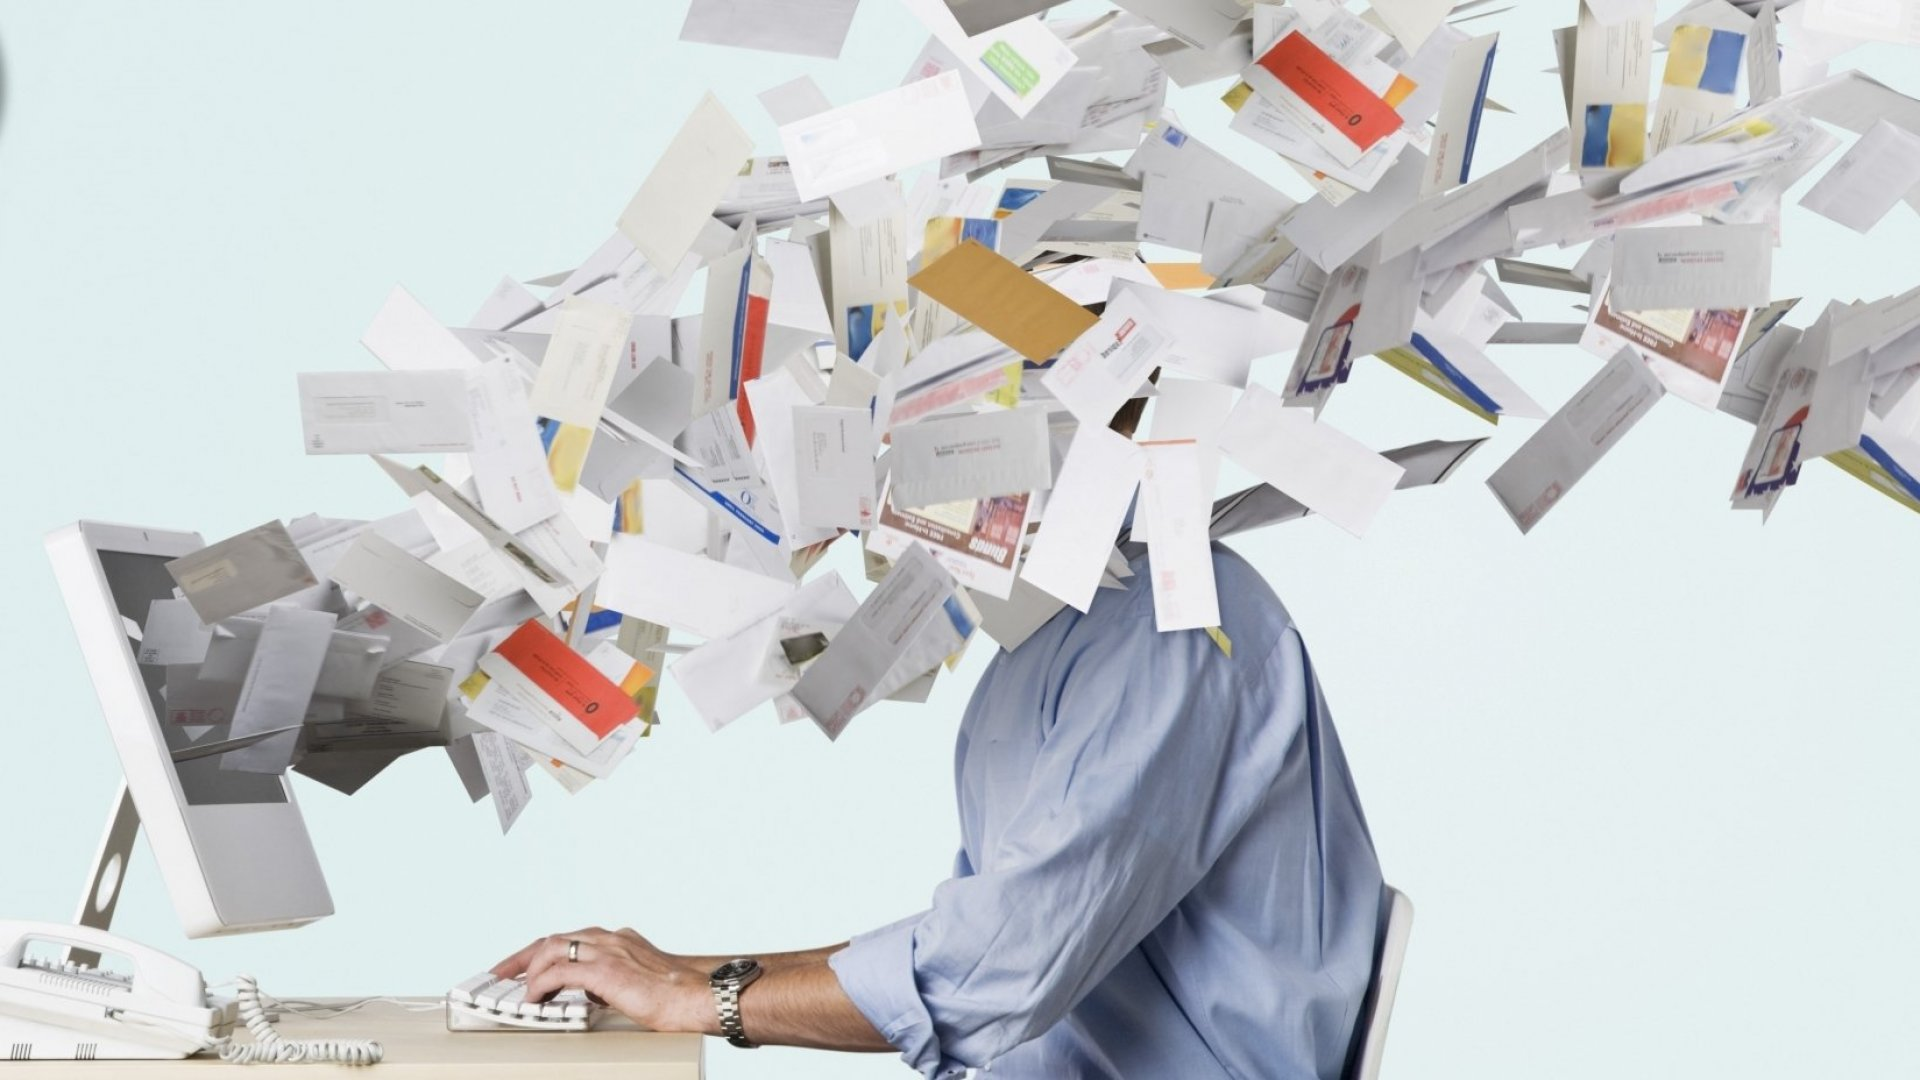 4 Ways to Use Your Email More Productively